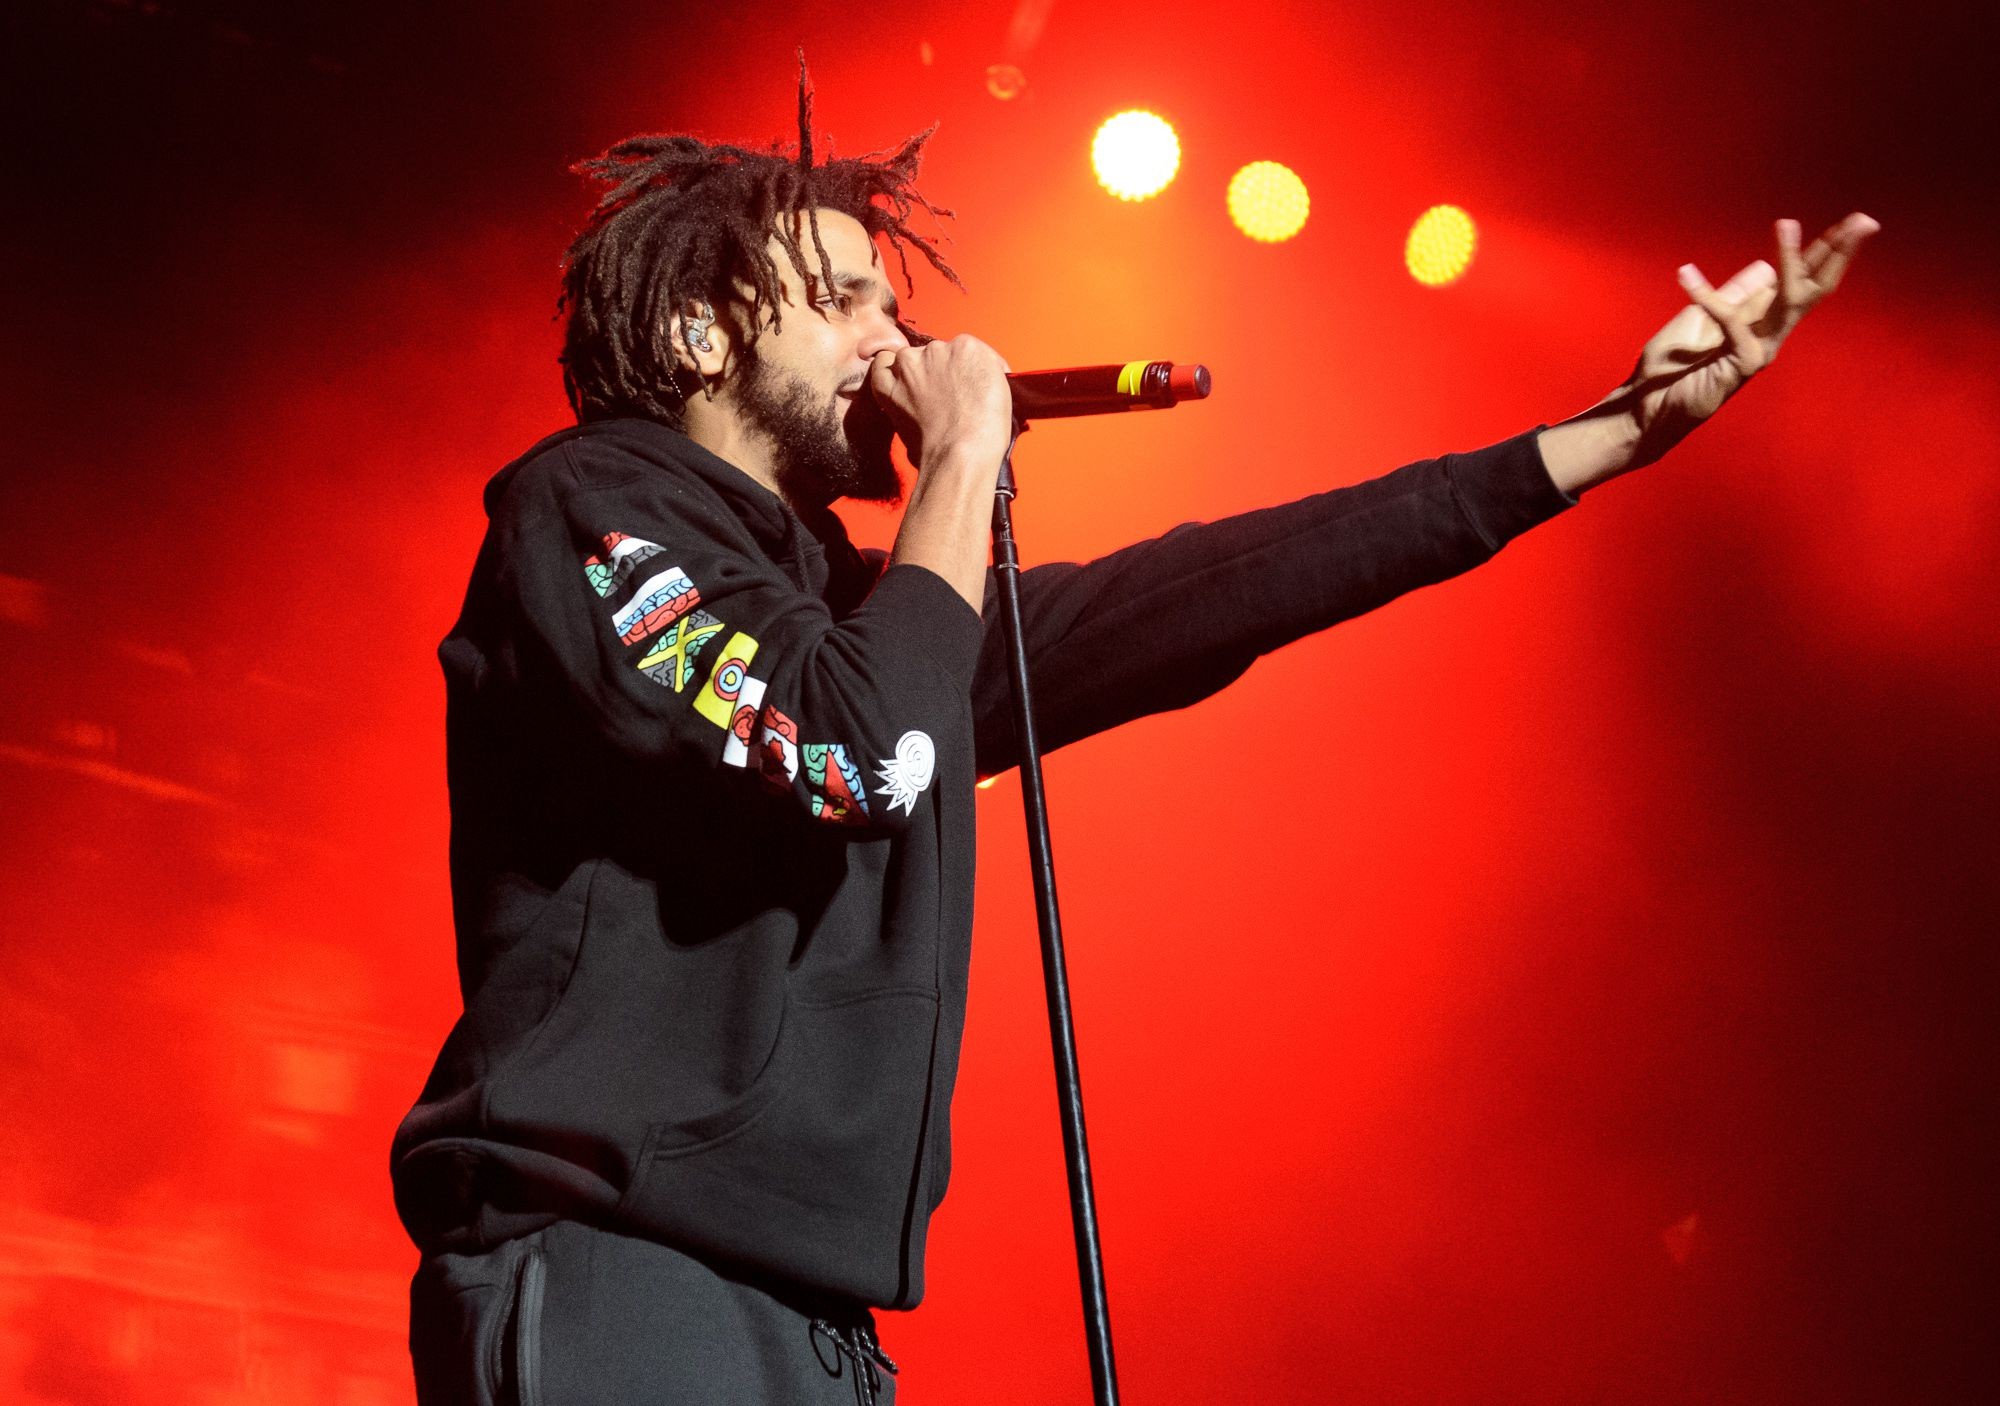 j. cole New J. Cole Song Teased [Listen] ben kaye the meandows j cole 3